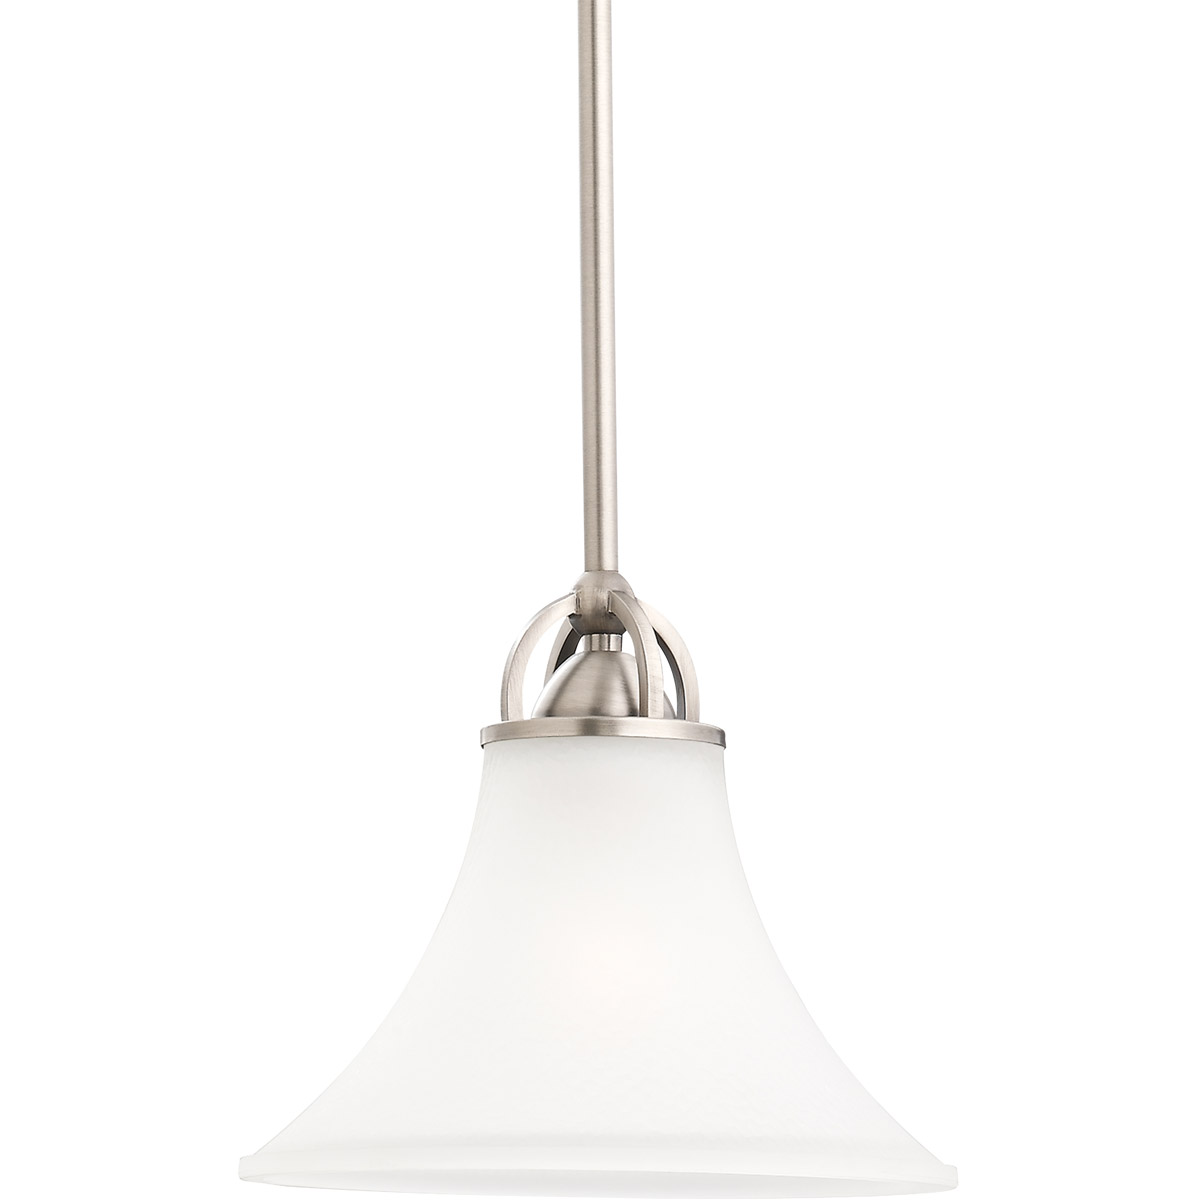 Sea Gull Somerton 1 Light Mini Pendant in Antique Brushed Nickel 61375BLE-965